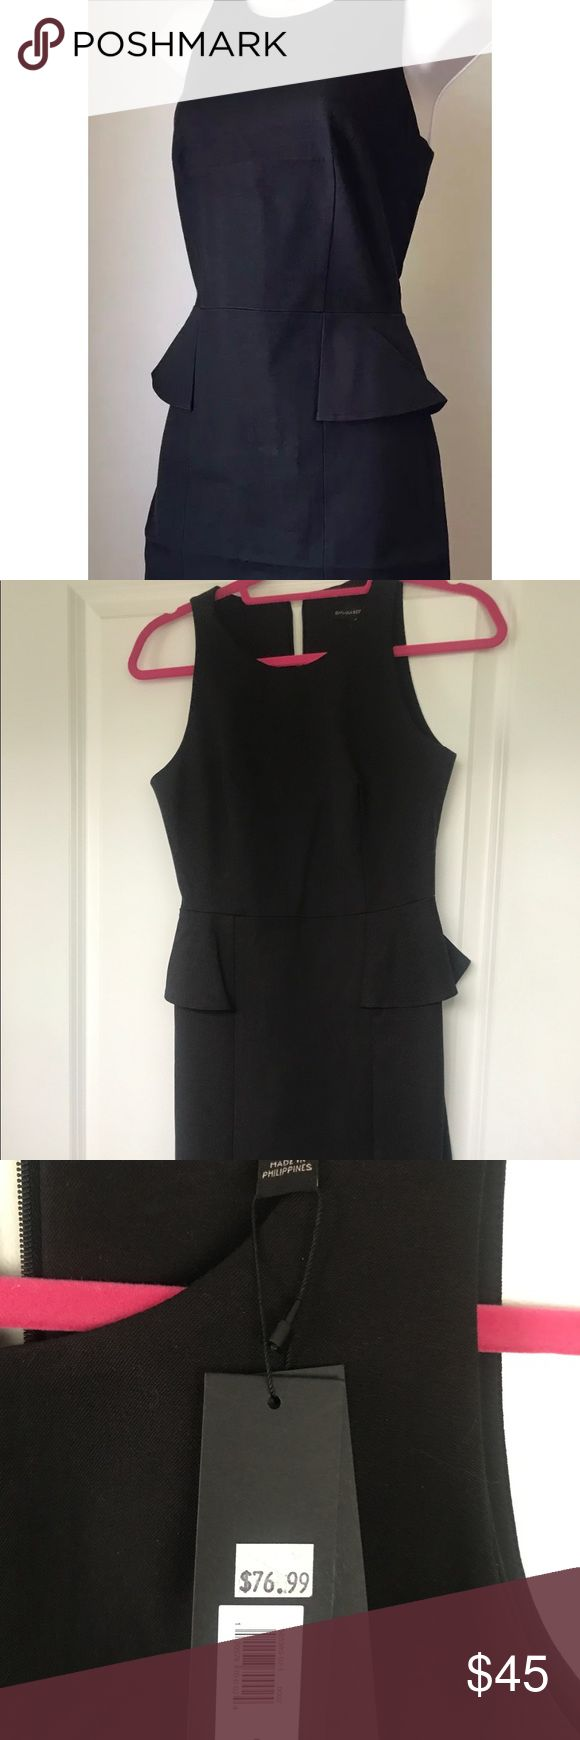 NWT Banana republic black peplum dress Sz 2 NWT black sheath dress with peplum accent at side waist, crew neck, stretchy material , tailored fit, zipper in back, vented front slits, hits at knee, size 2 Banana Republic Dresses